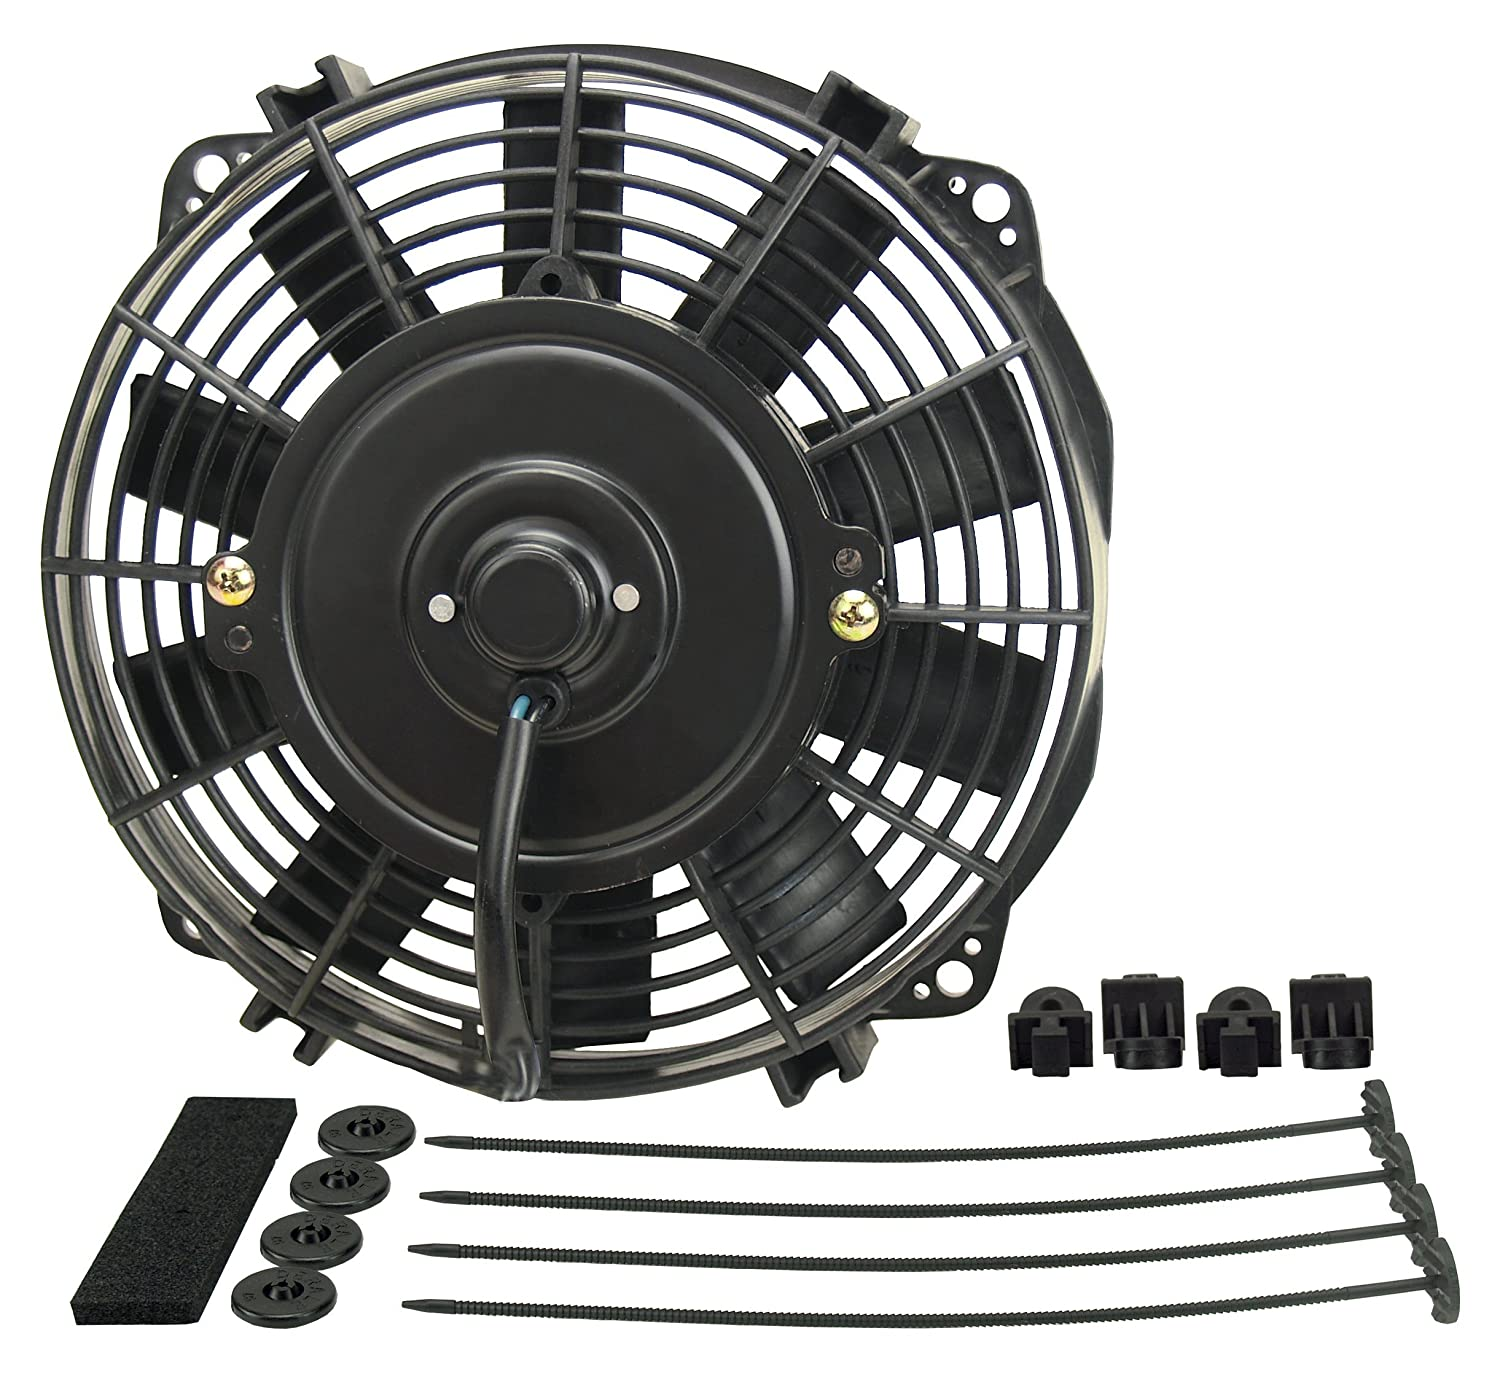 Derale 16908 8' Dyno-Cool High Performance Electric Fan